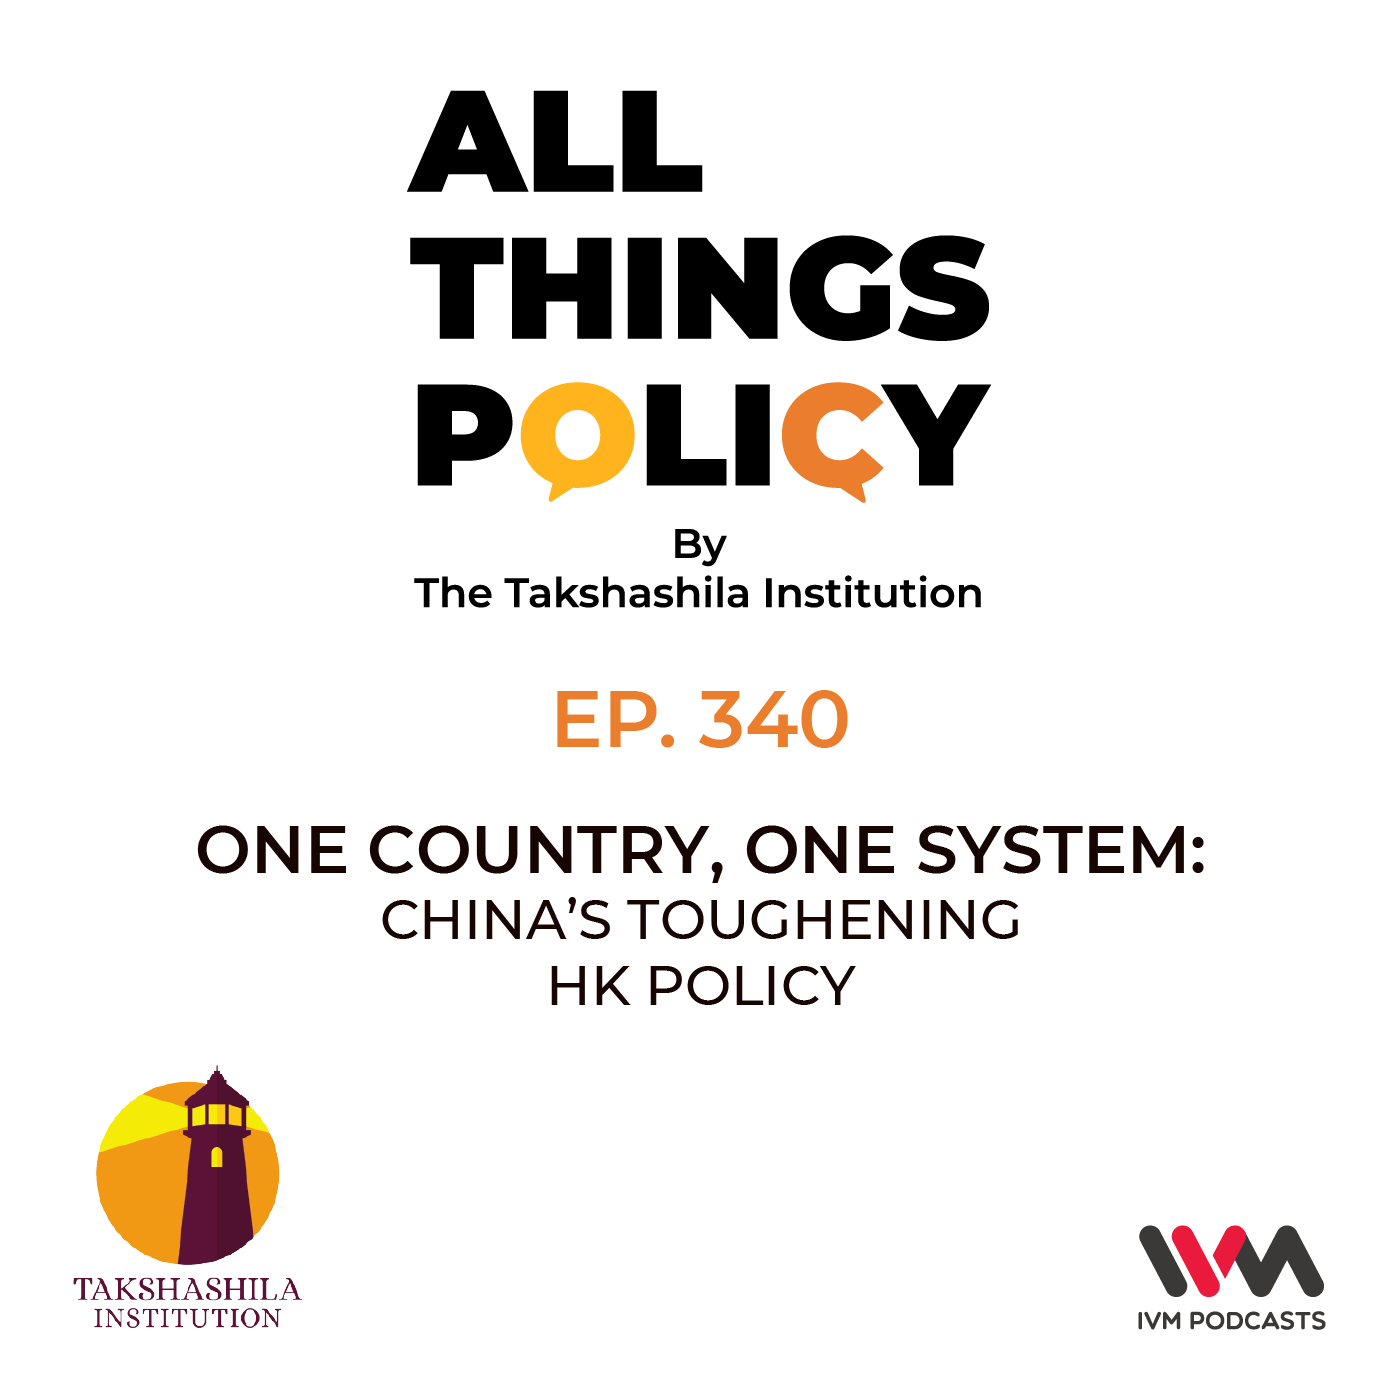 Ep. 340: One Country, One System: China's Toughening HK Policy